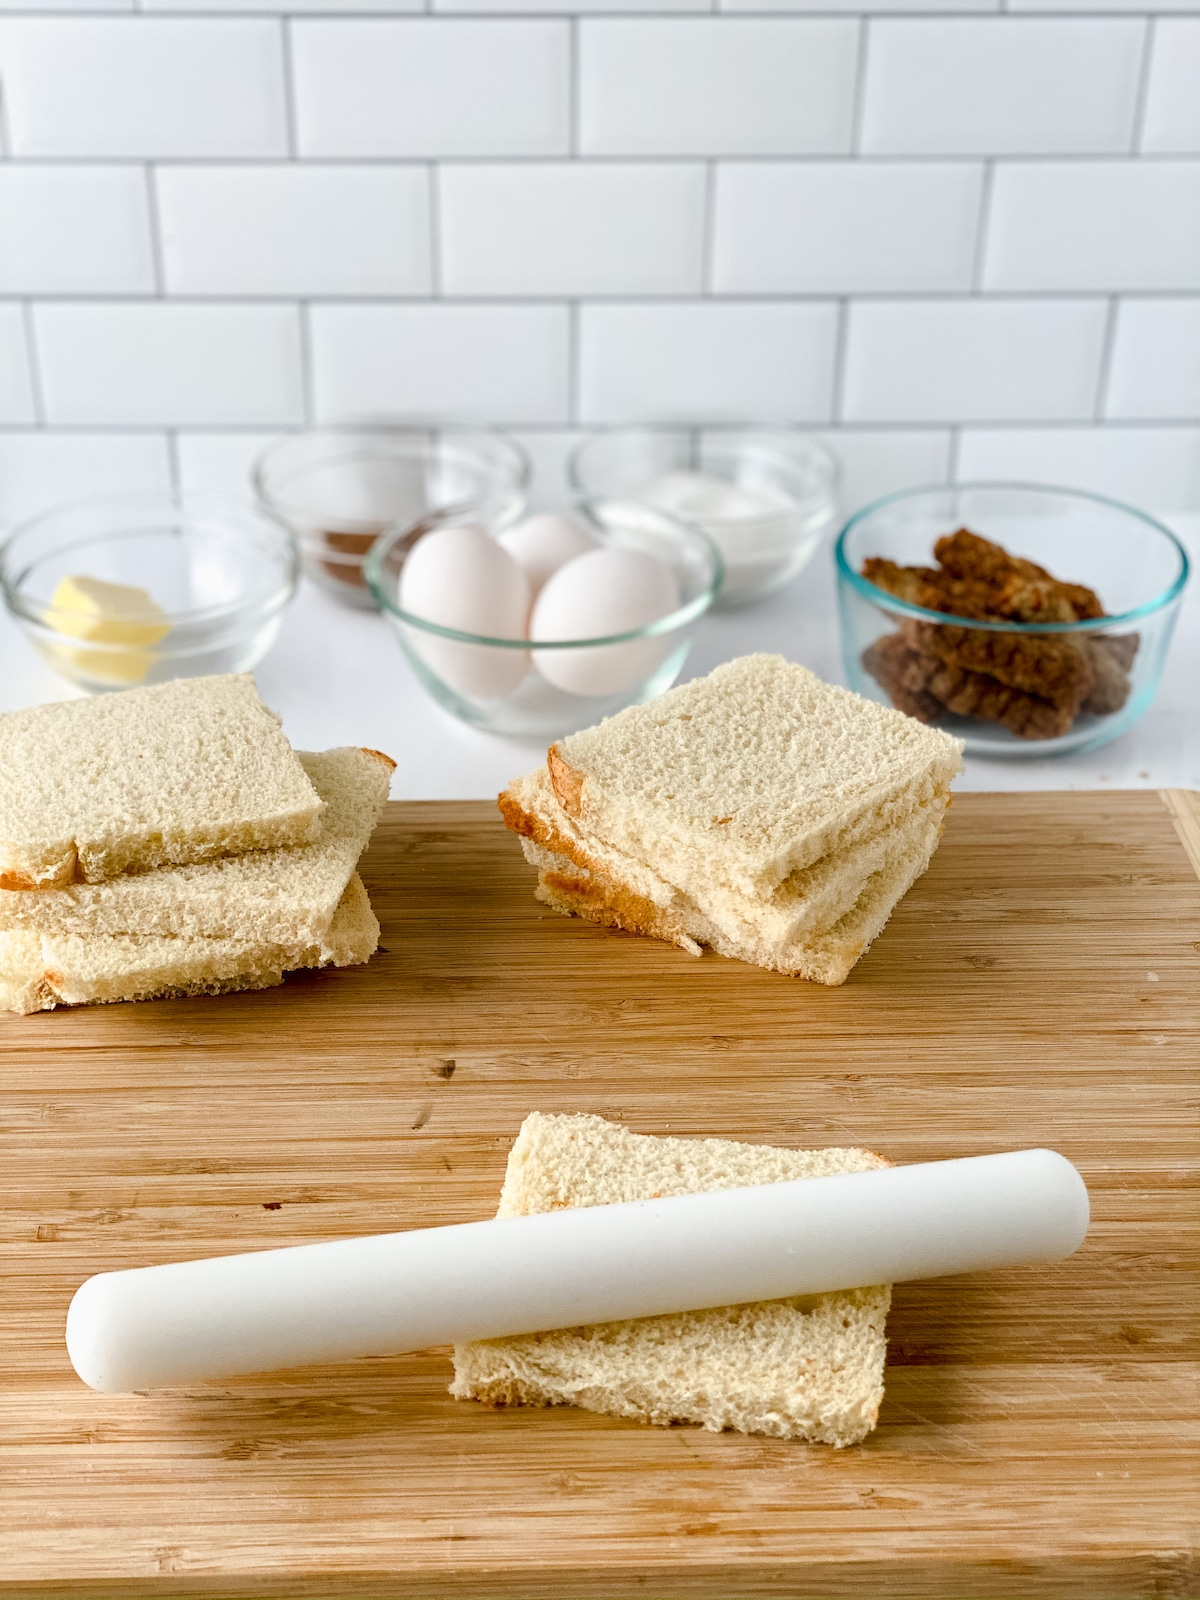 Rolling bread slices